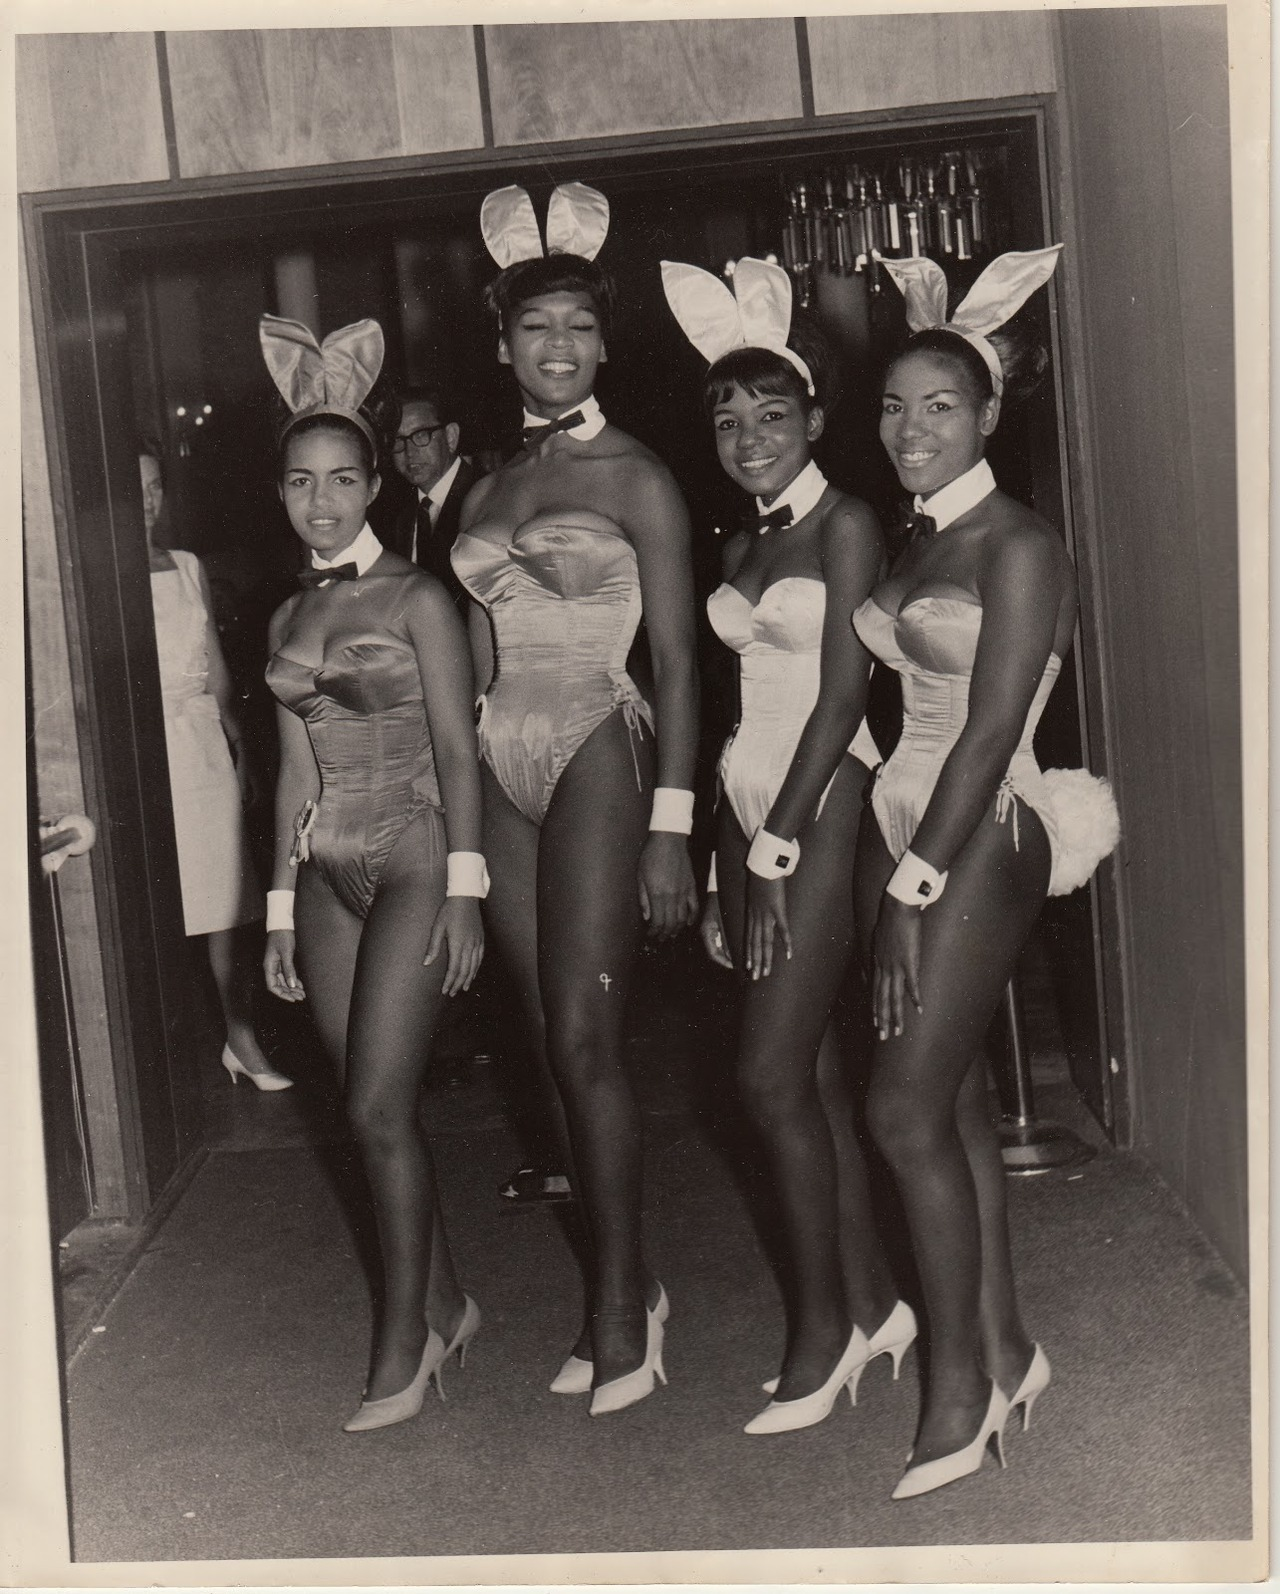 I love me some Black playboy bunnies! (via Vintage Sleaze)